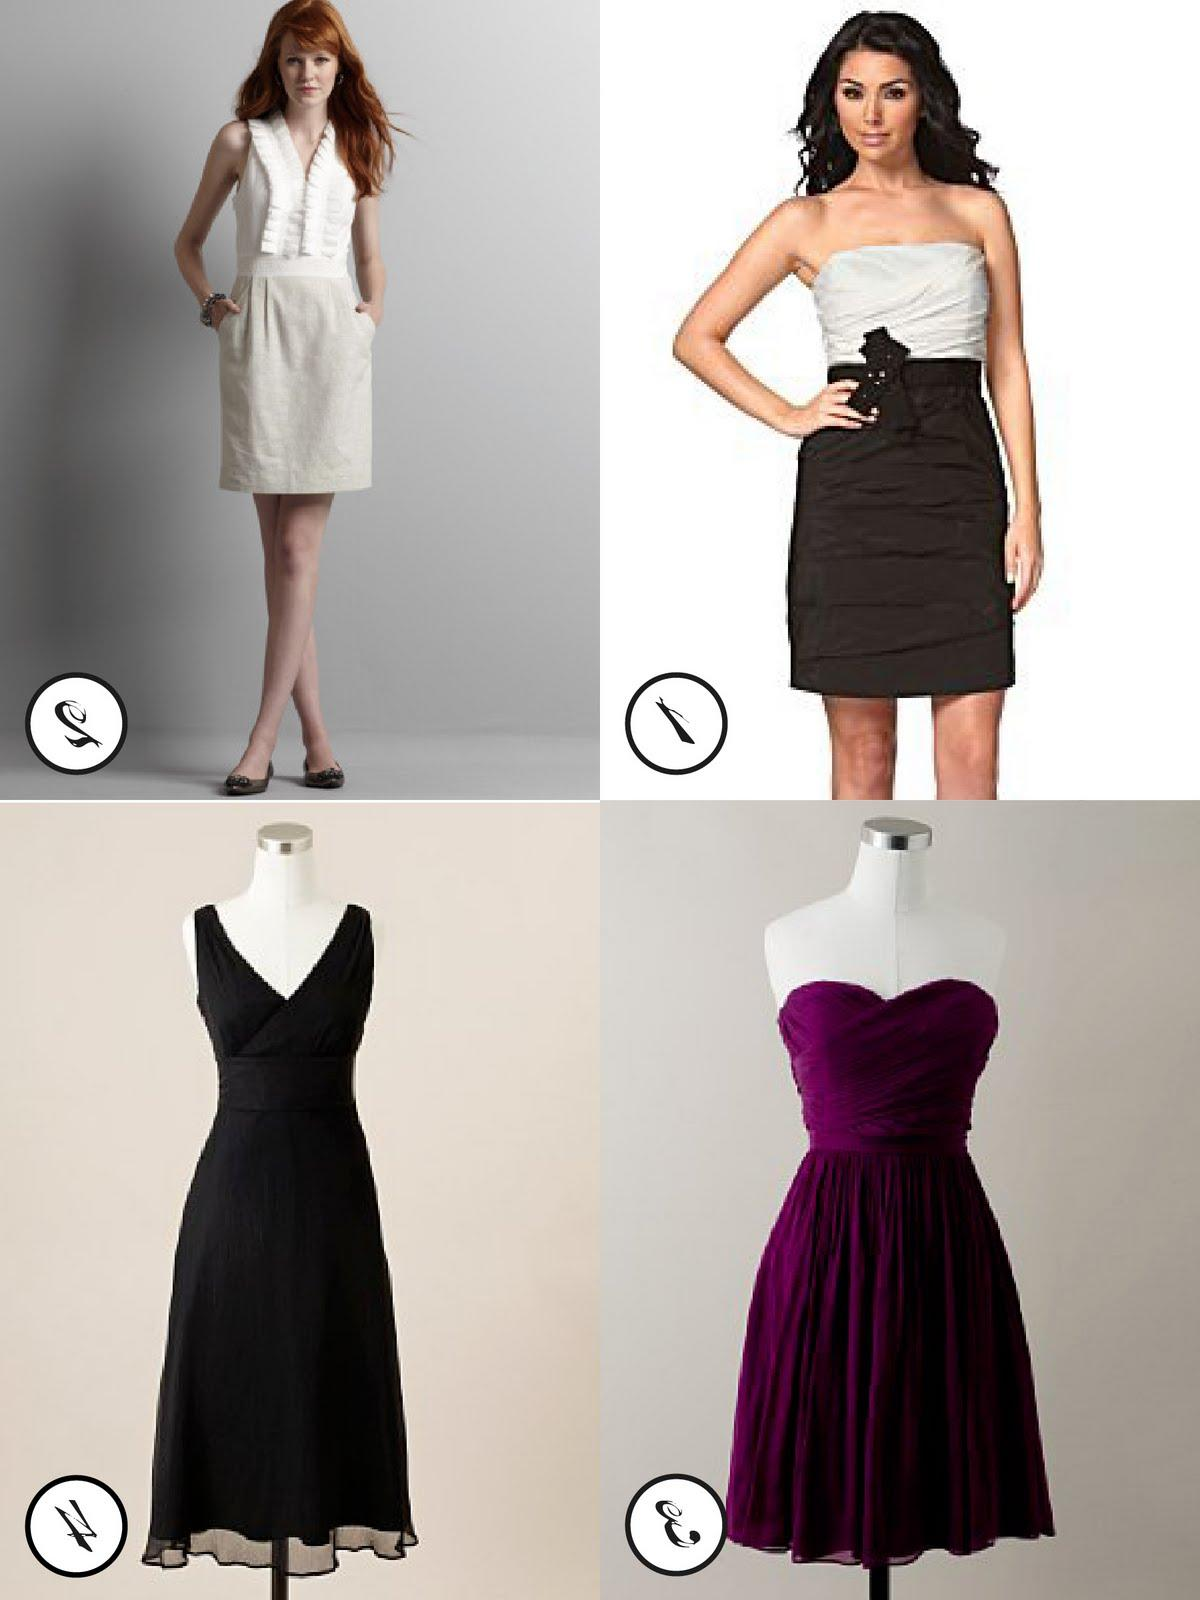 pin dillards dresses cake on pinterest